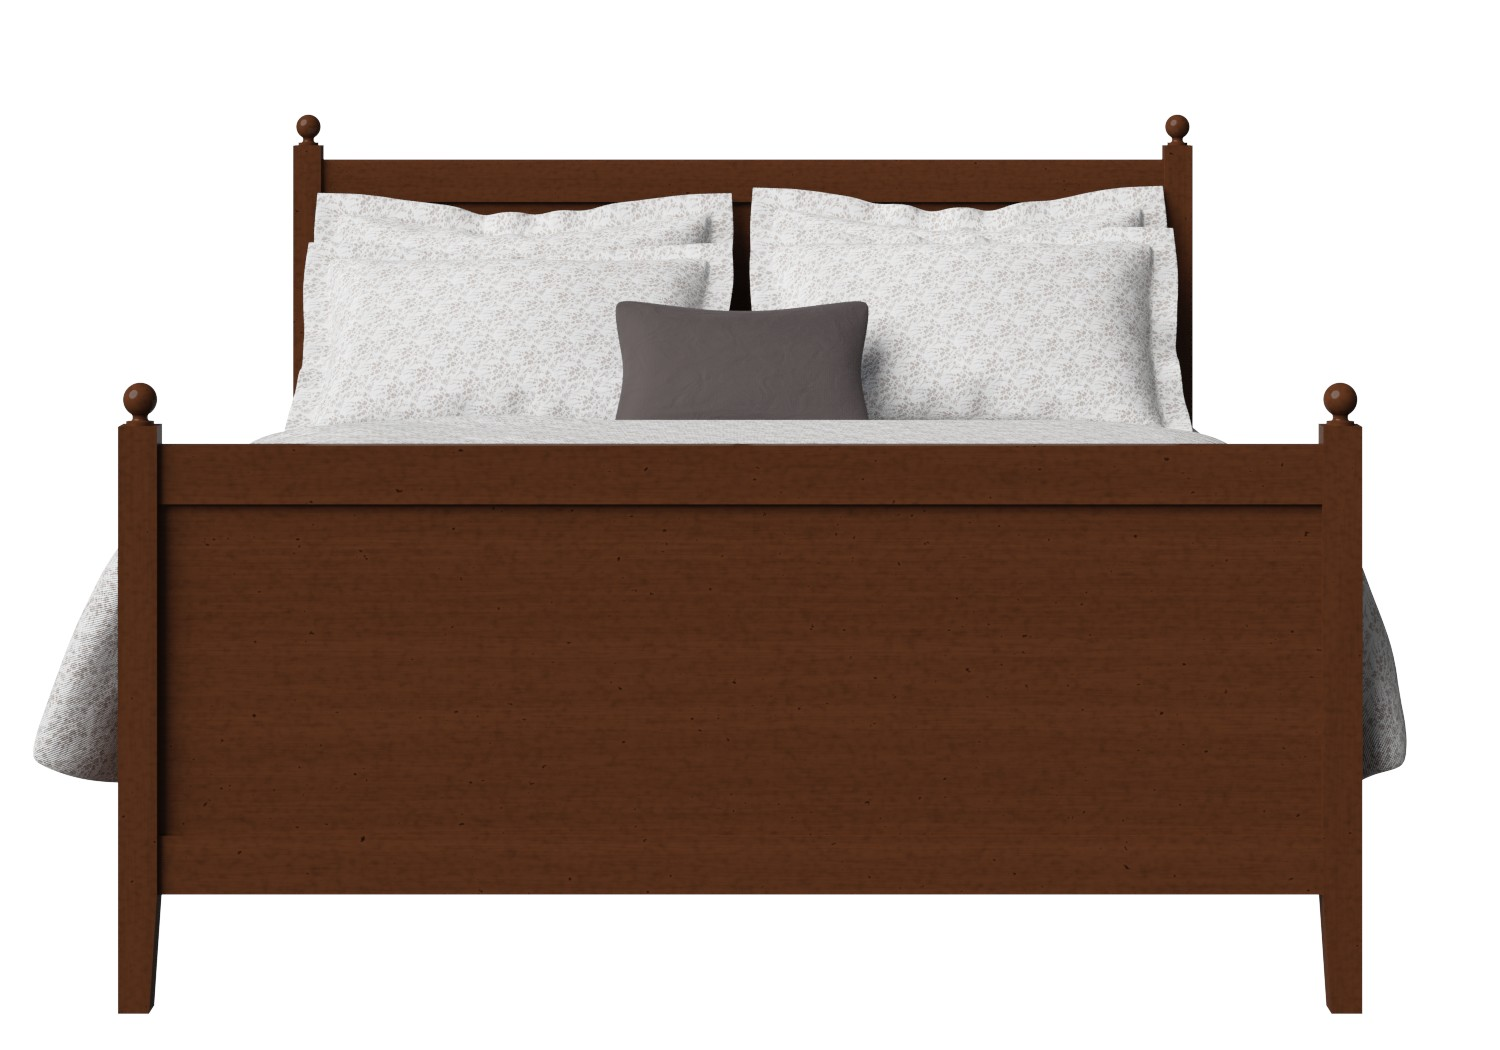 Marbella Wood Bed in Dark Cherry